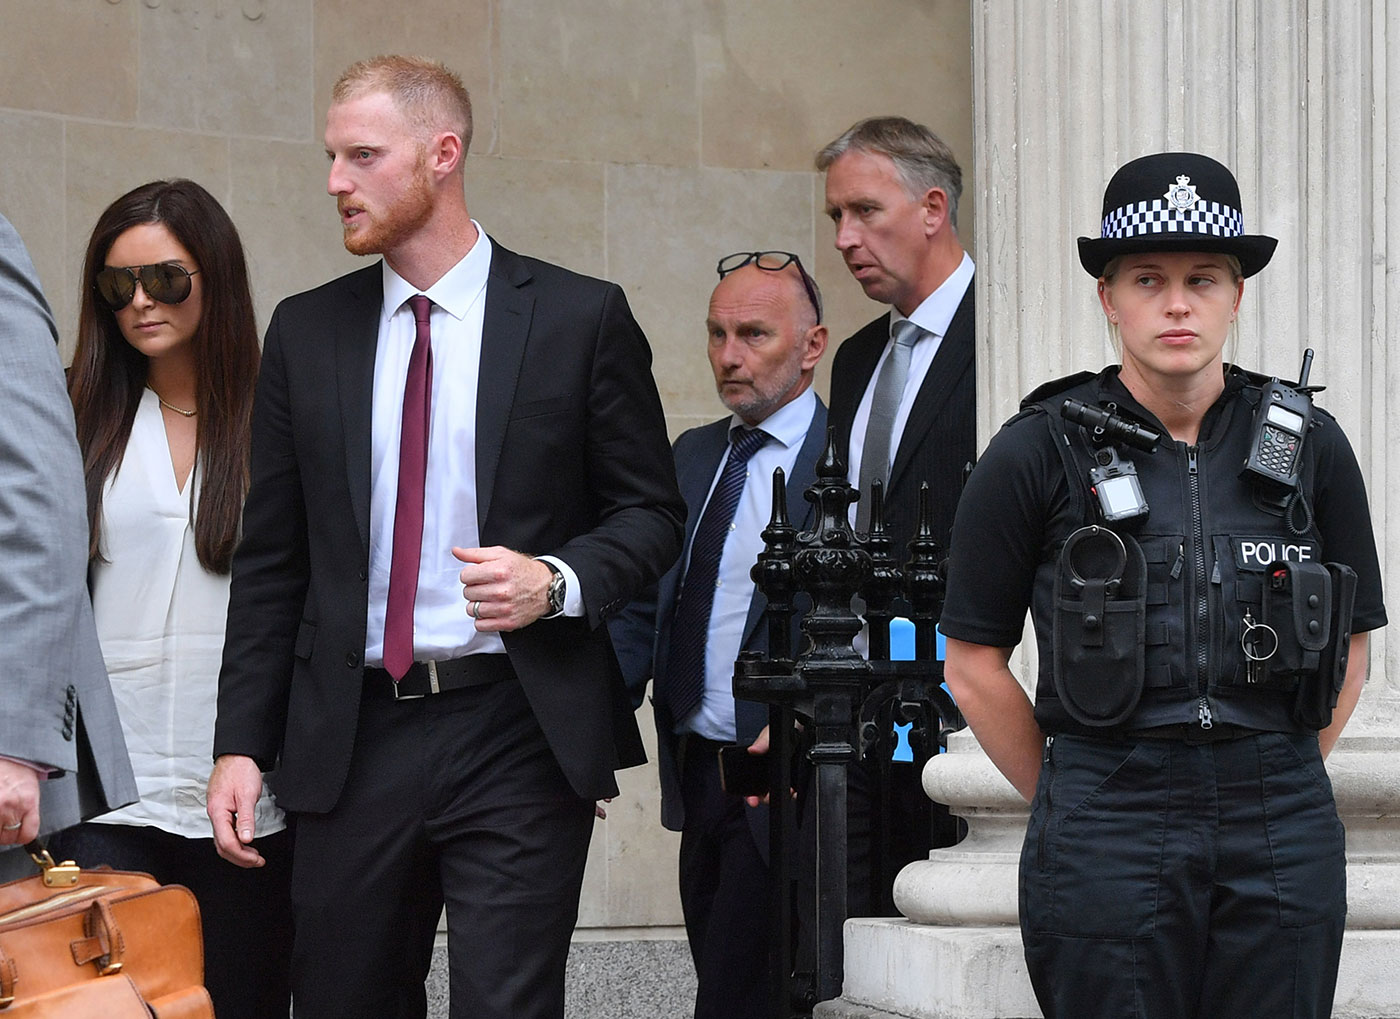 Cricketer Ben Stokes found not guilty of affray